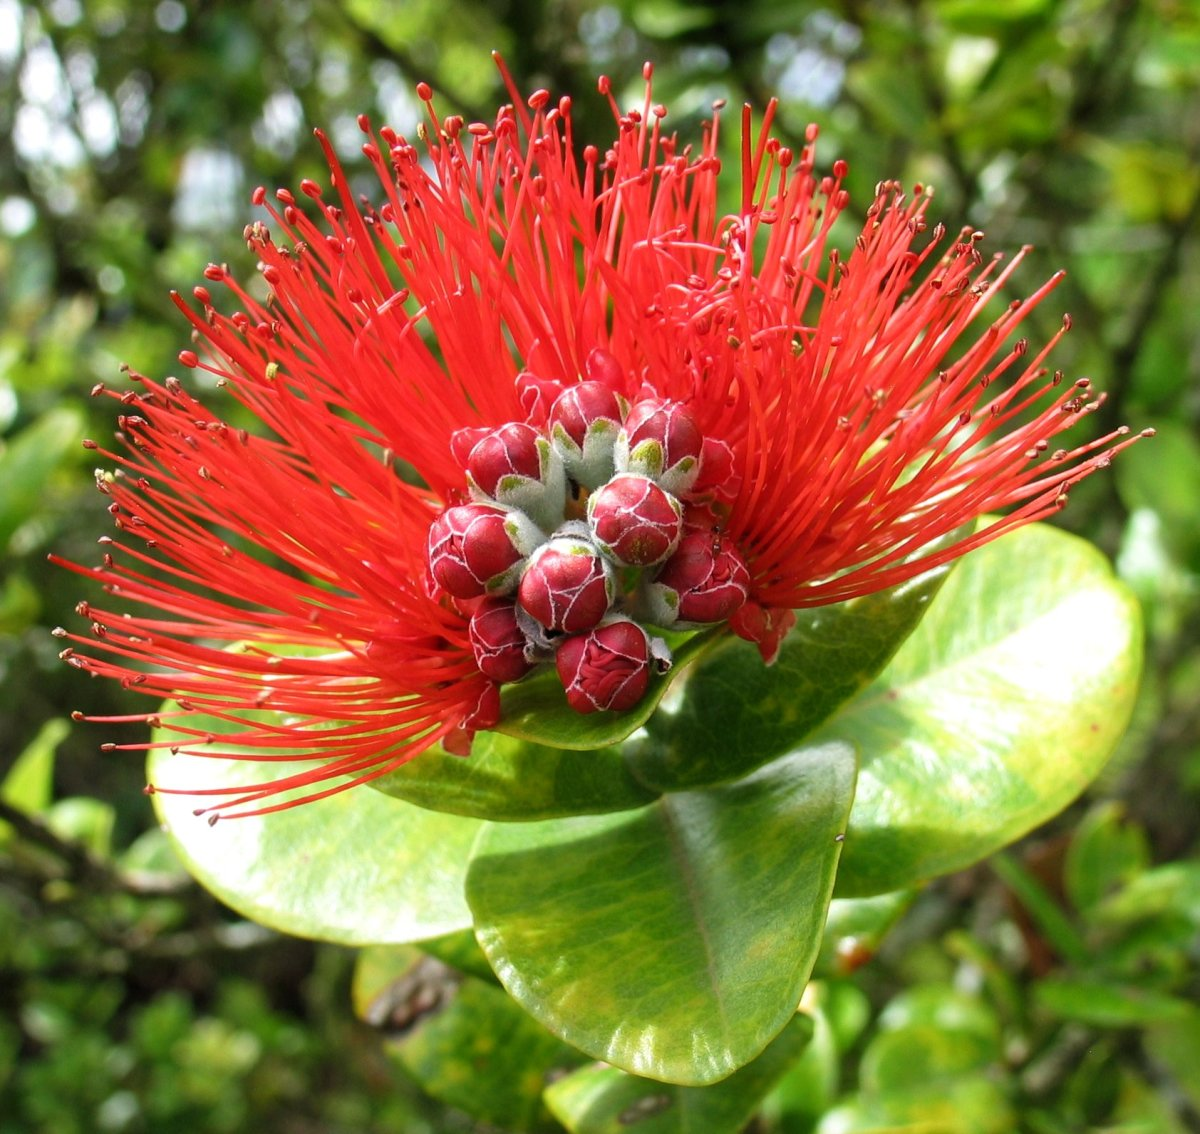 This is the ohi'a lehua flower that will be missing from the Merrie Monarch adornments  until the fungal disease affecting them has been extinguished.